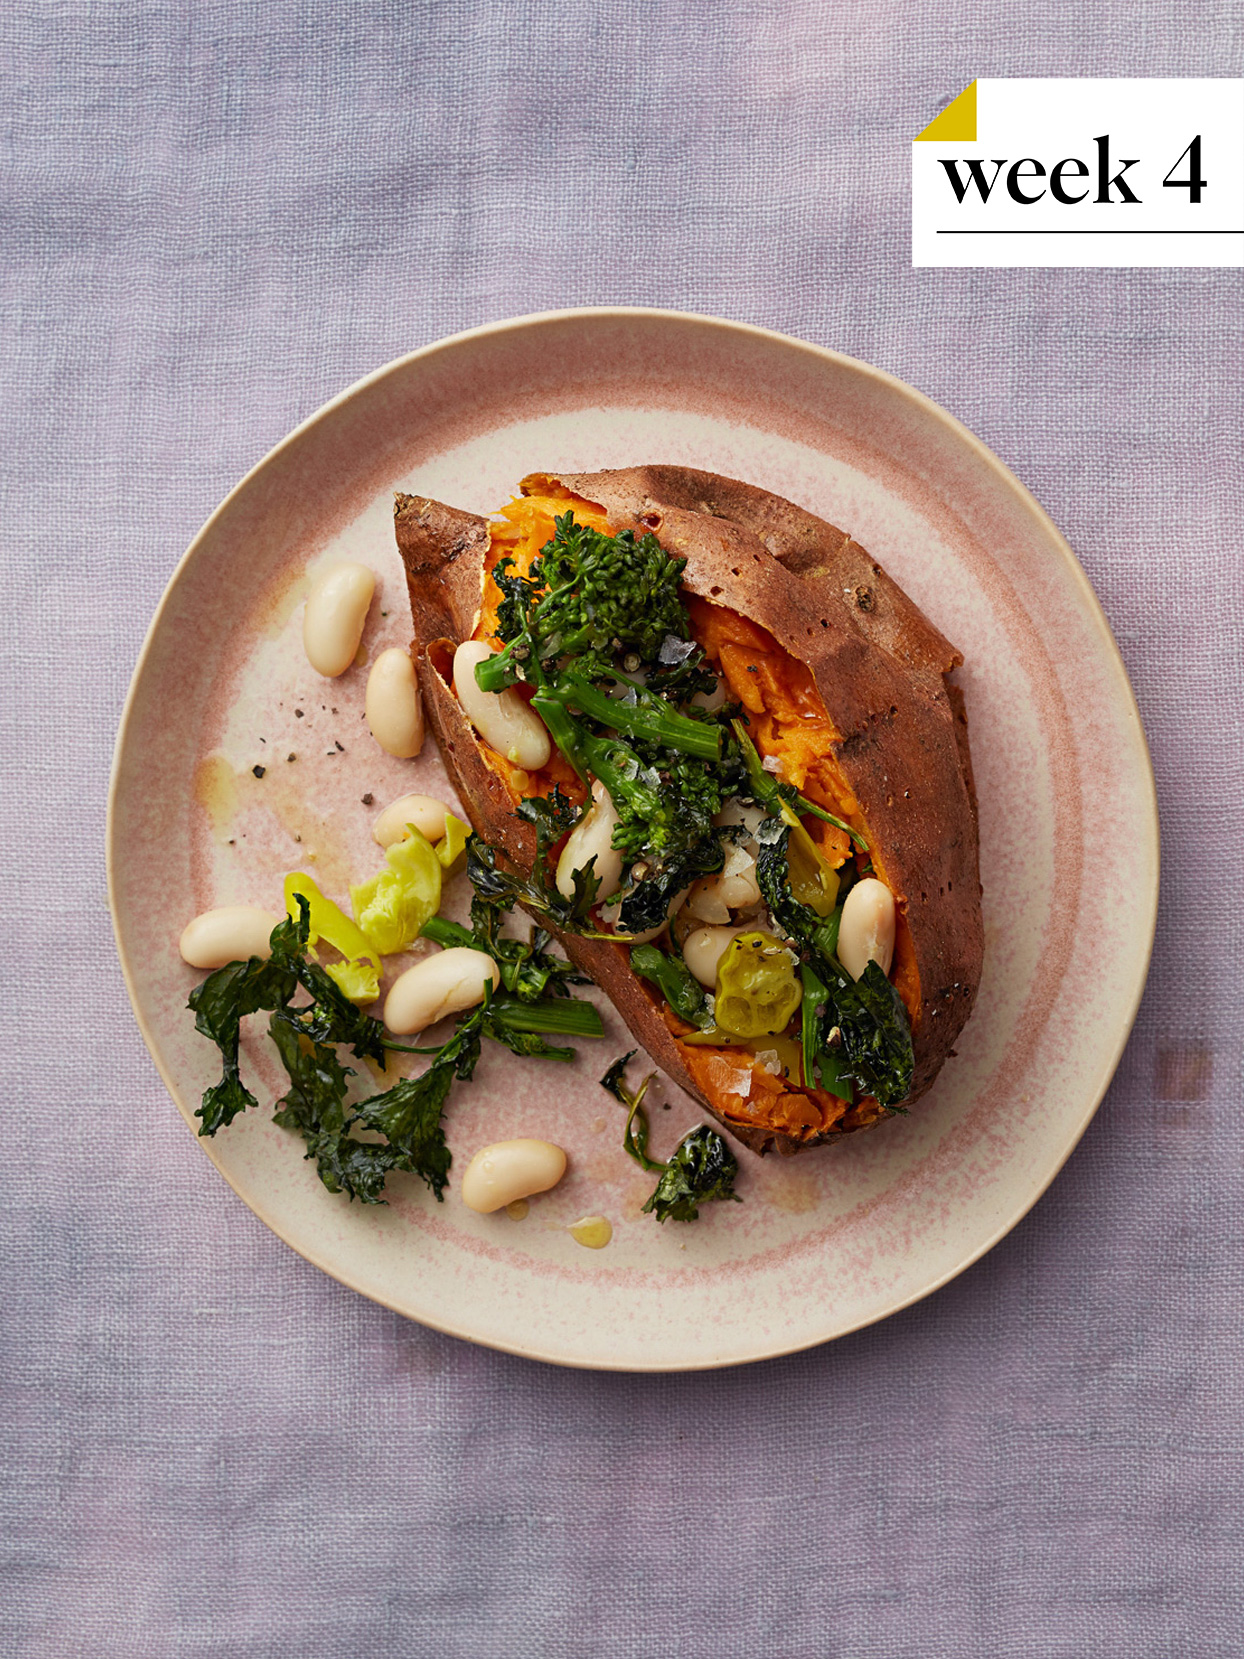 baked sweet potato with white beans and broccolini